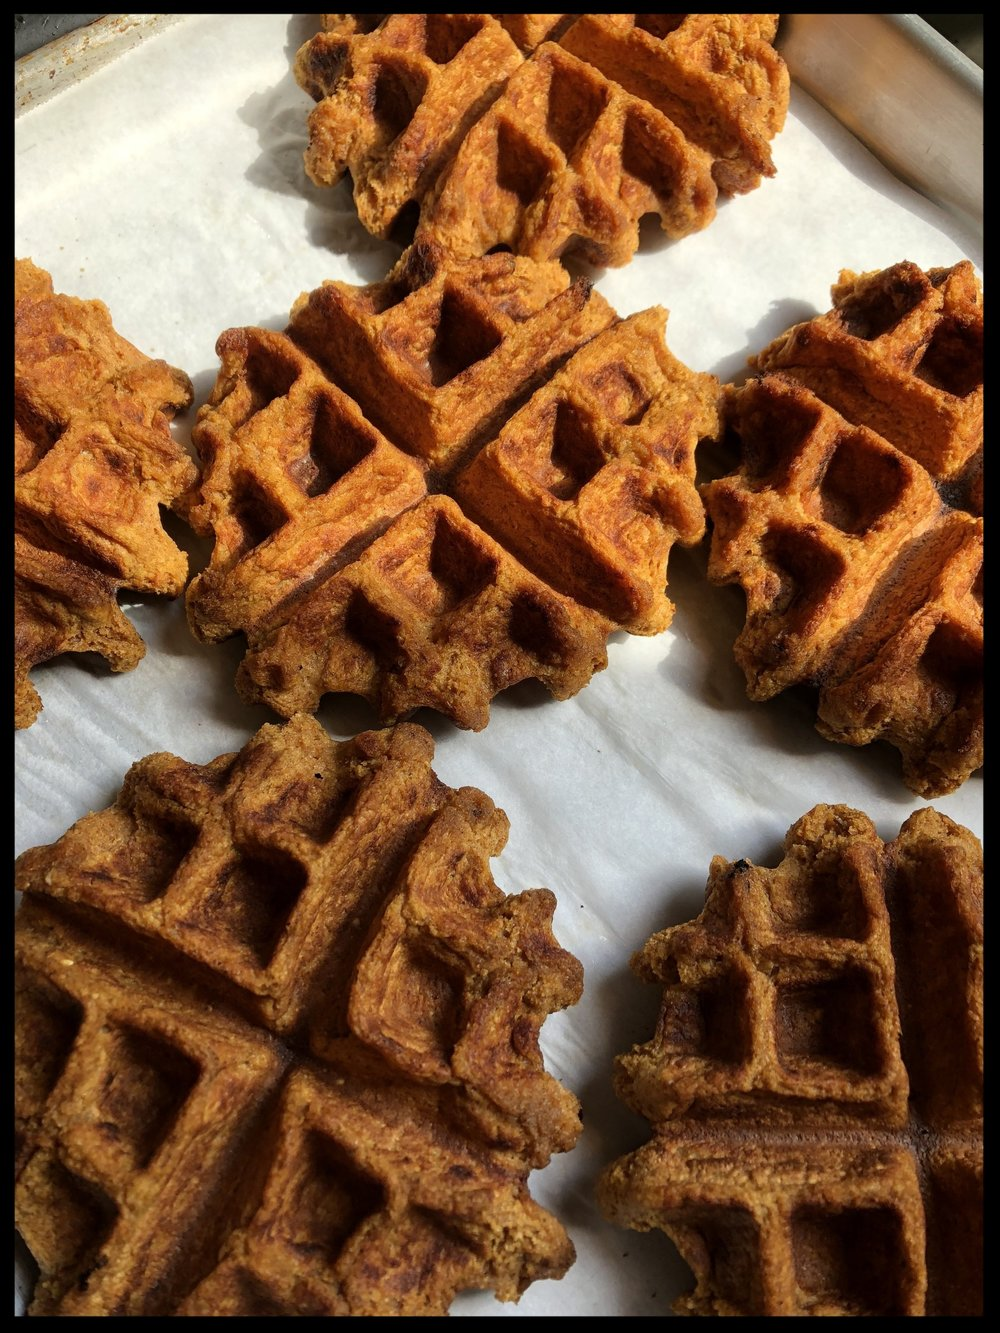 Waffles on their way to the freezer!